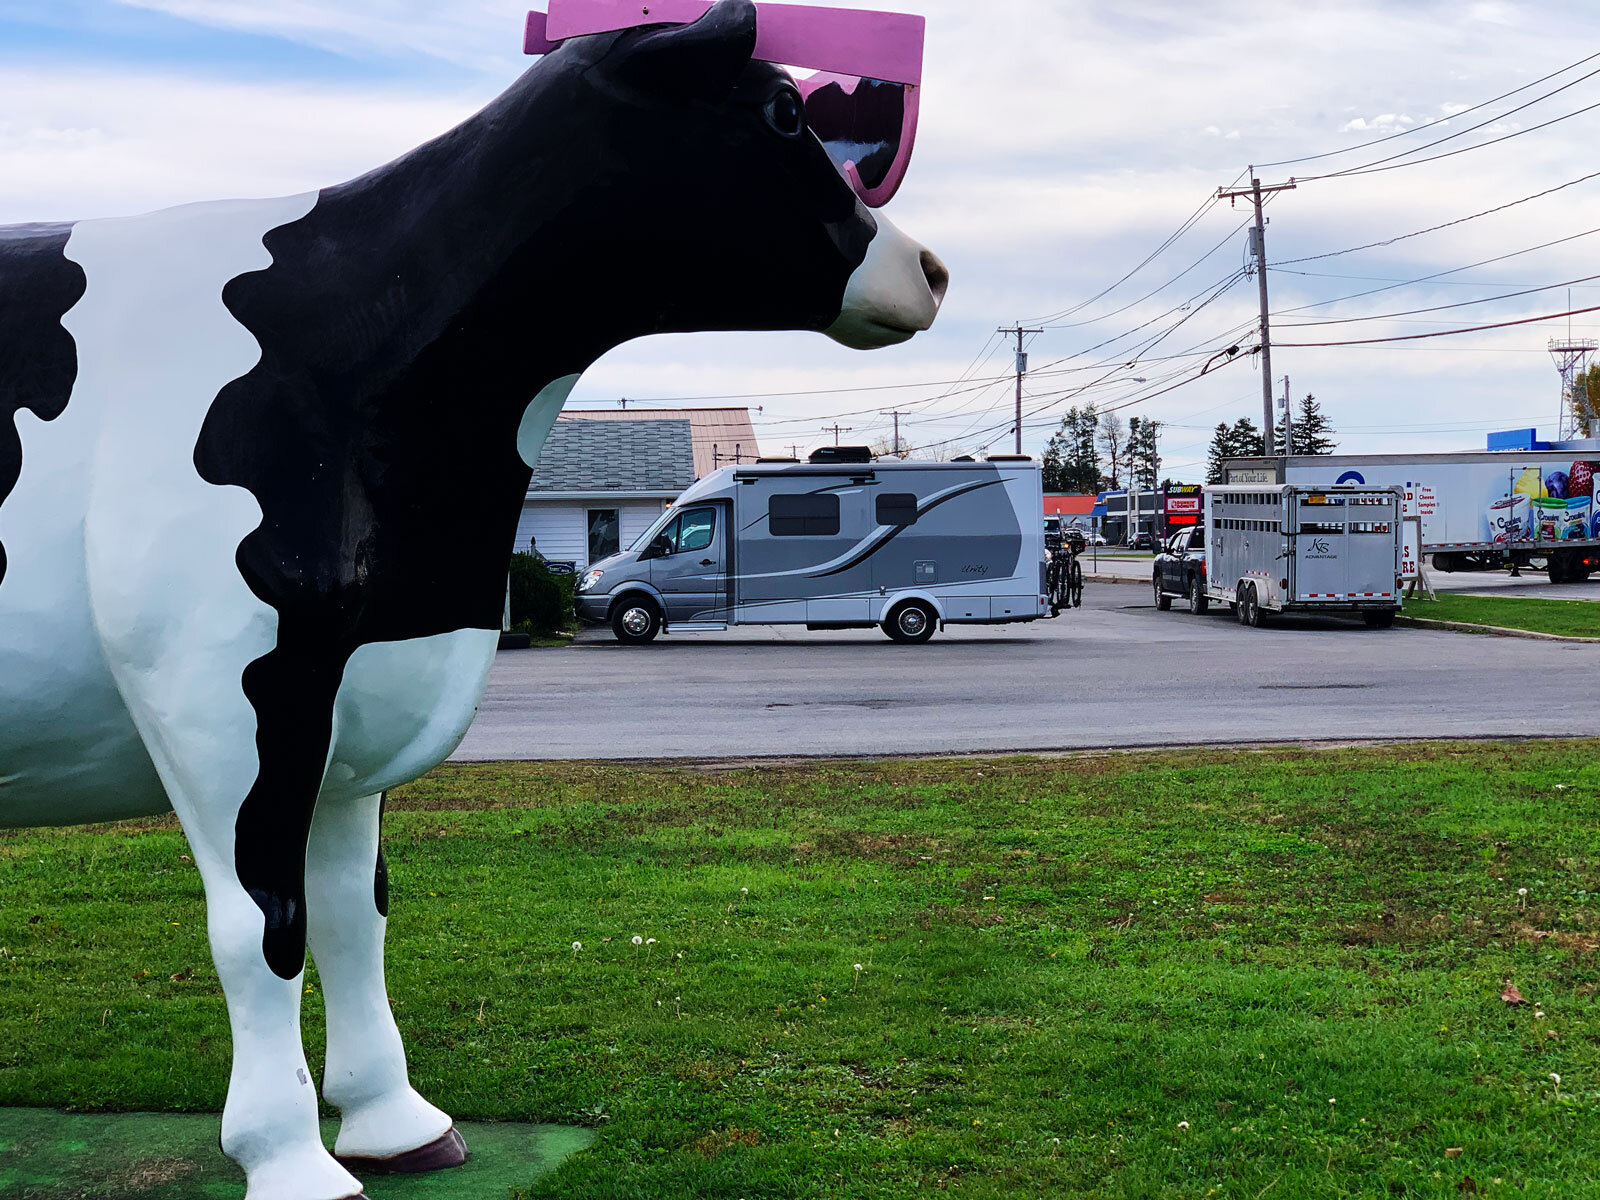 The Doodle and the Big Cow